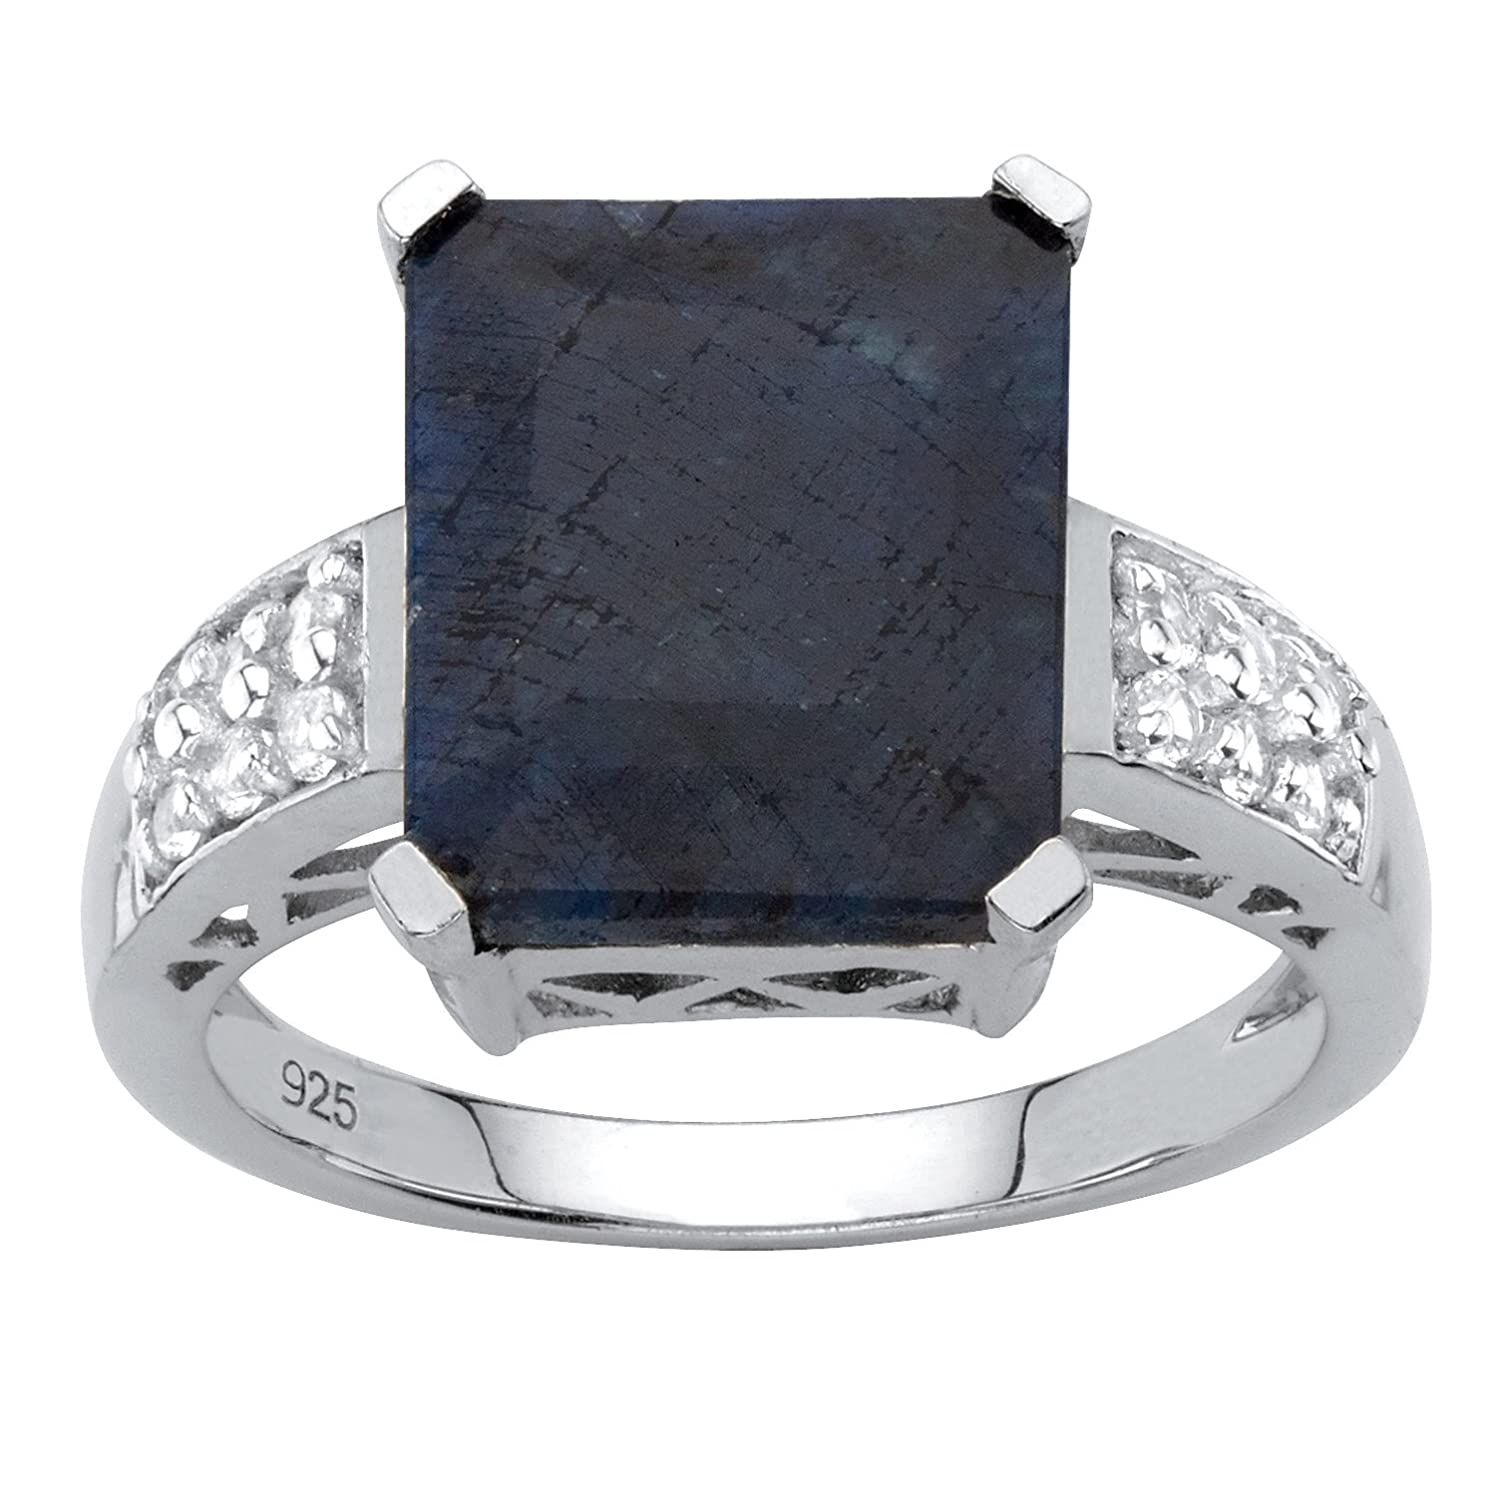 ad5b2b0ab Amazon.com: .925 Sterling Silver Emerald Cut Genuine Blue Sapphire and White  Topaz Ring Size 6: Jewelry